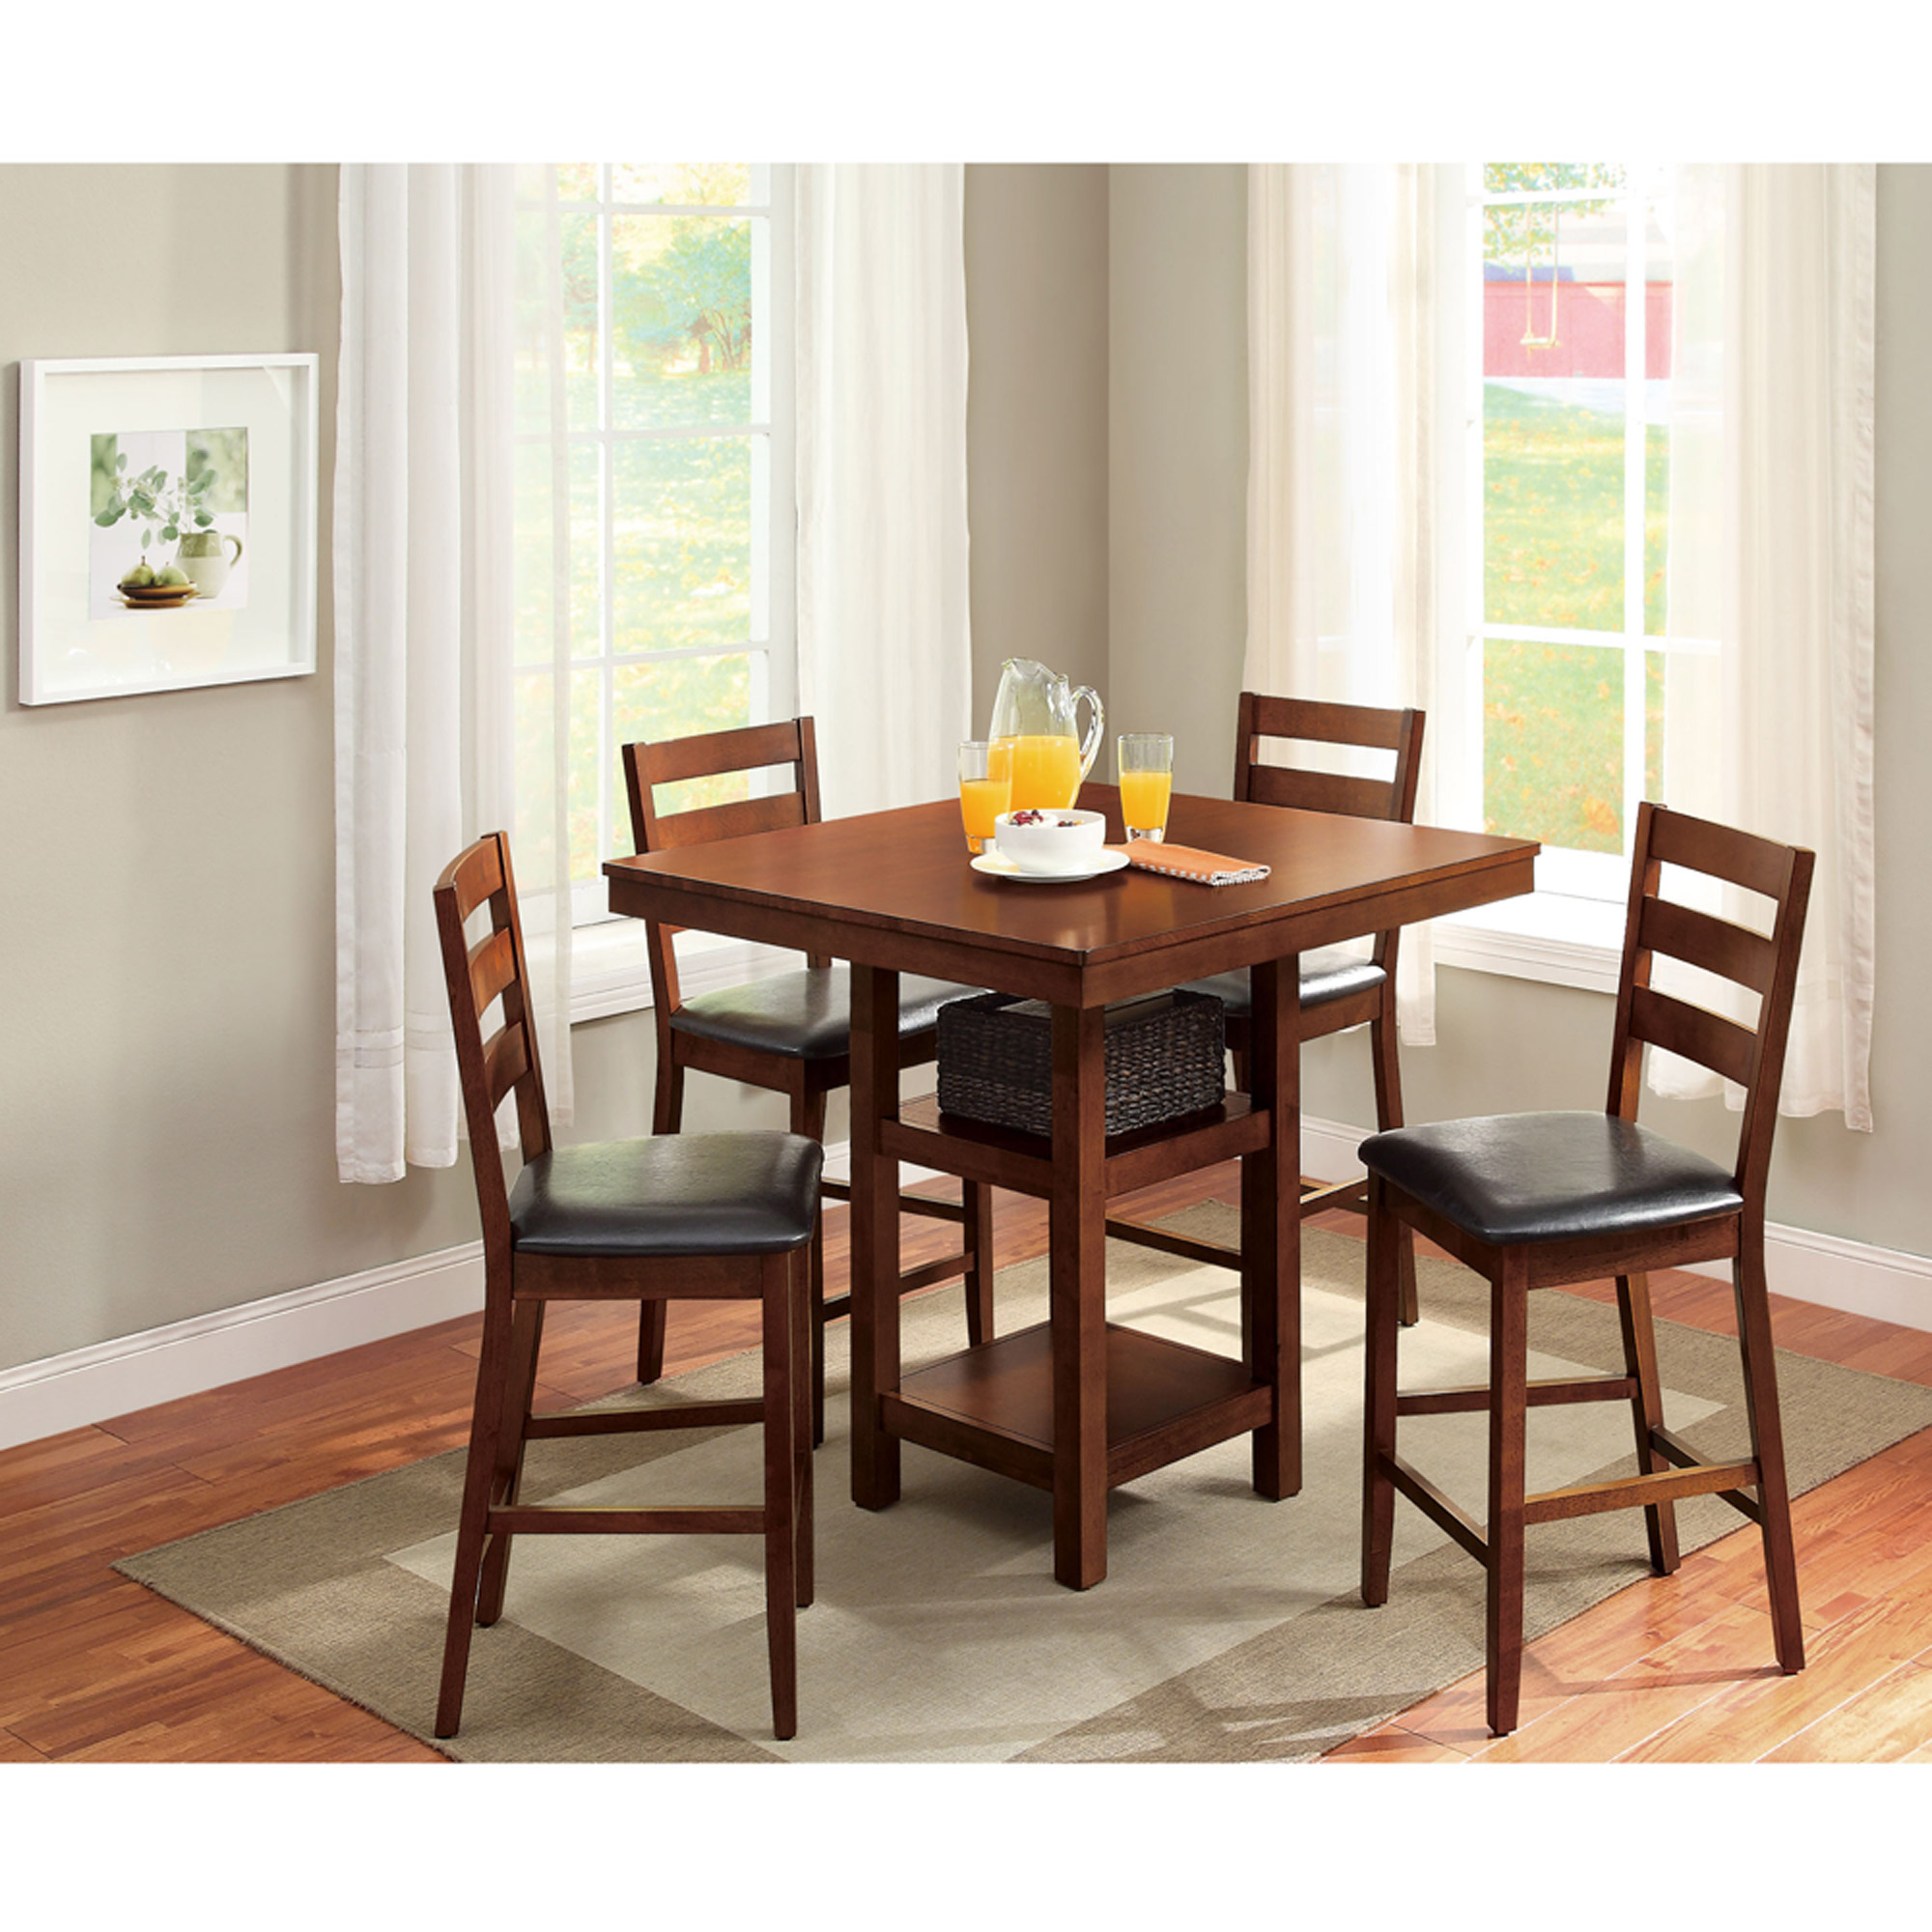 better homes and gardens dalton park 5-piece counter height dining